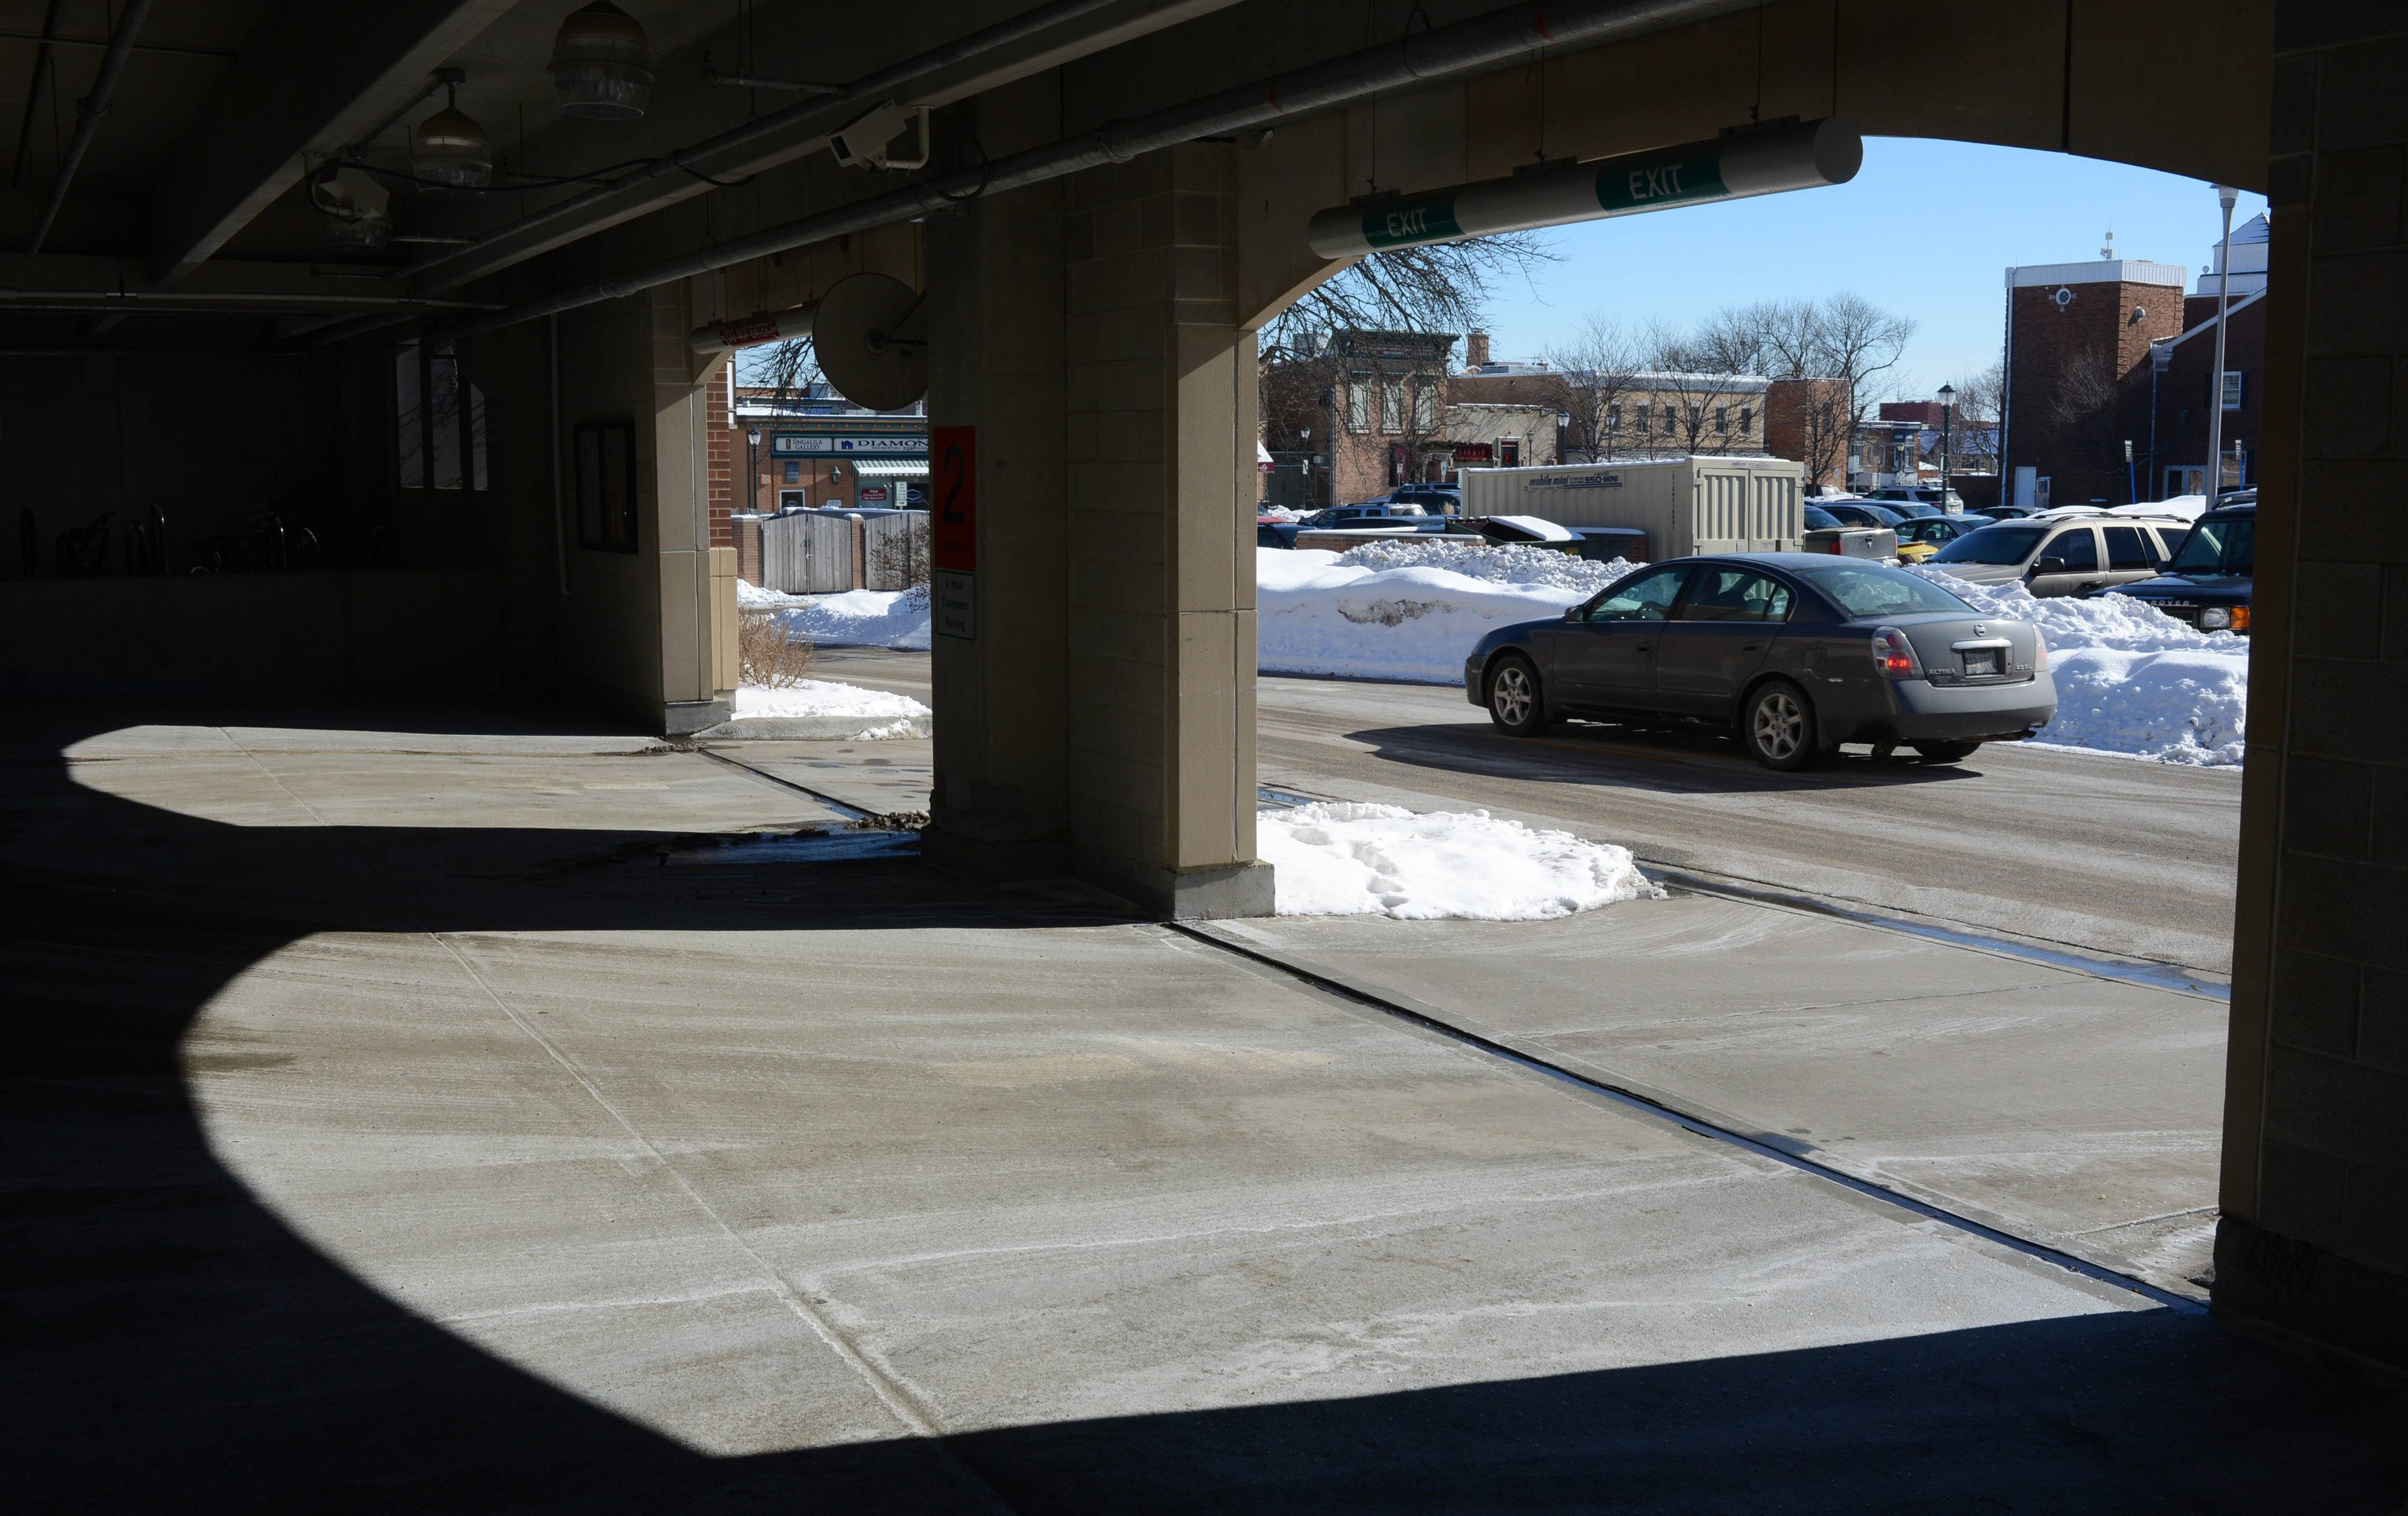 Libertyville seeks options to ease downtown parking crunch